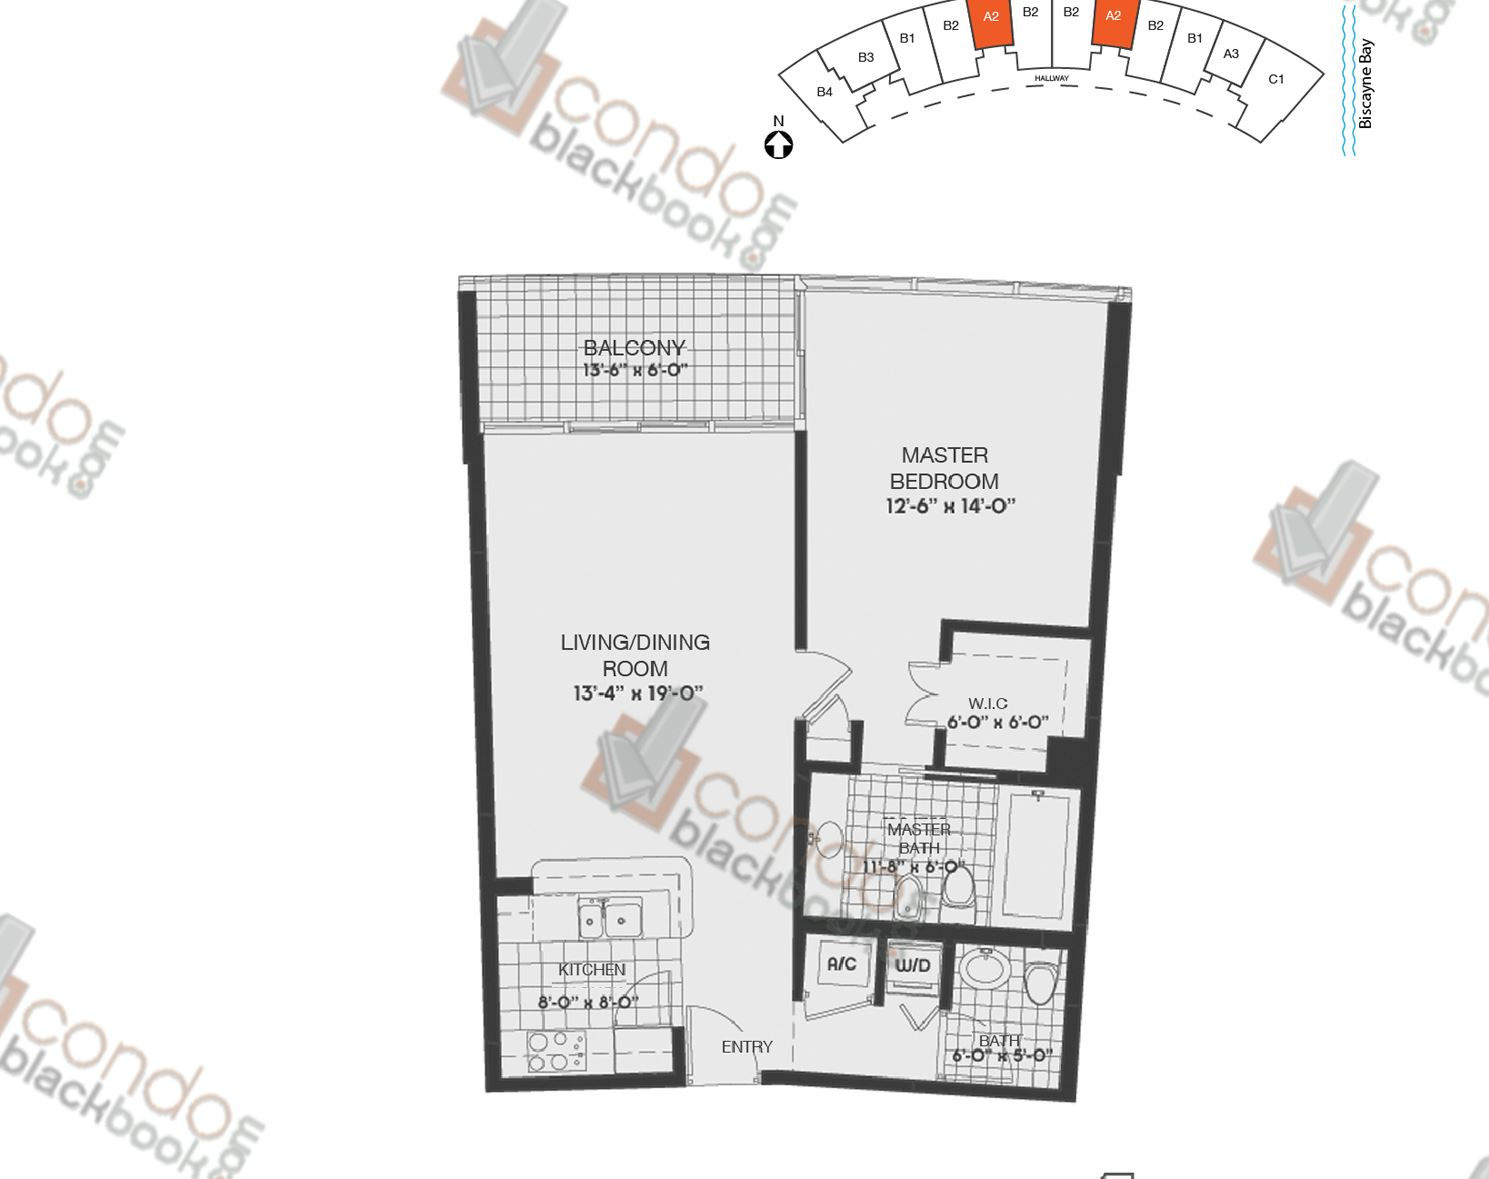 Floor plan for Blue Edgewater Miami, model A2, line 05,08, 1/1.5 bedrooms, 831 sq ft